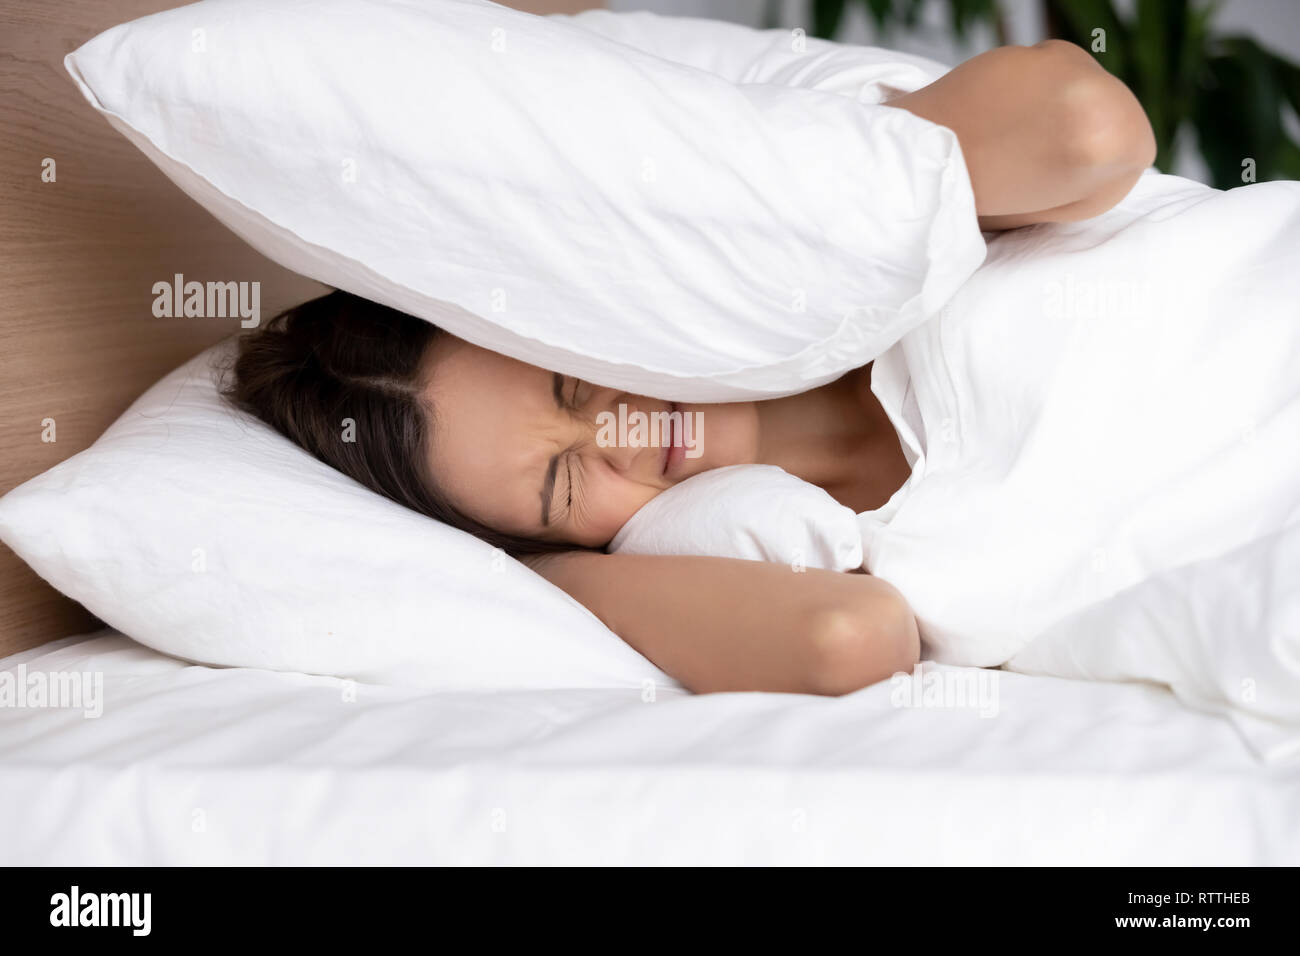 Annoyed young woman covering ears with pillow, suffering from noise - Stock Image